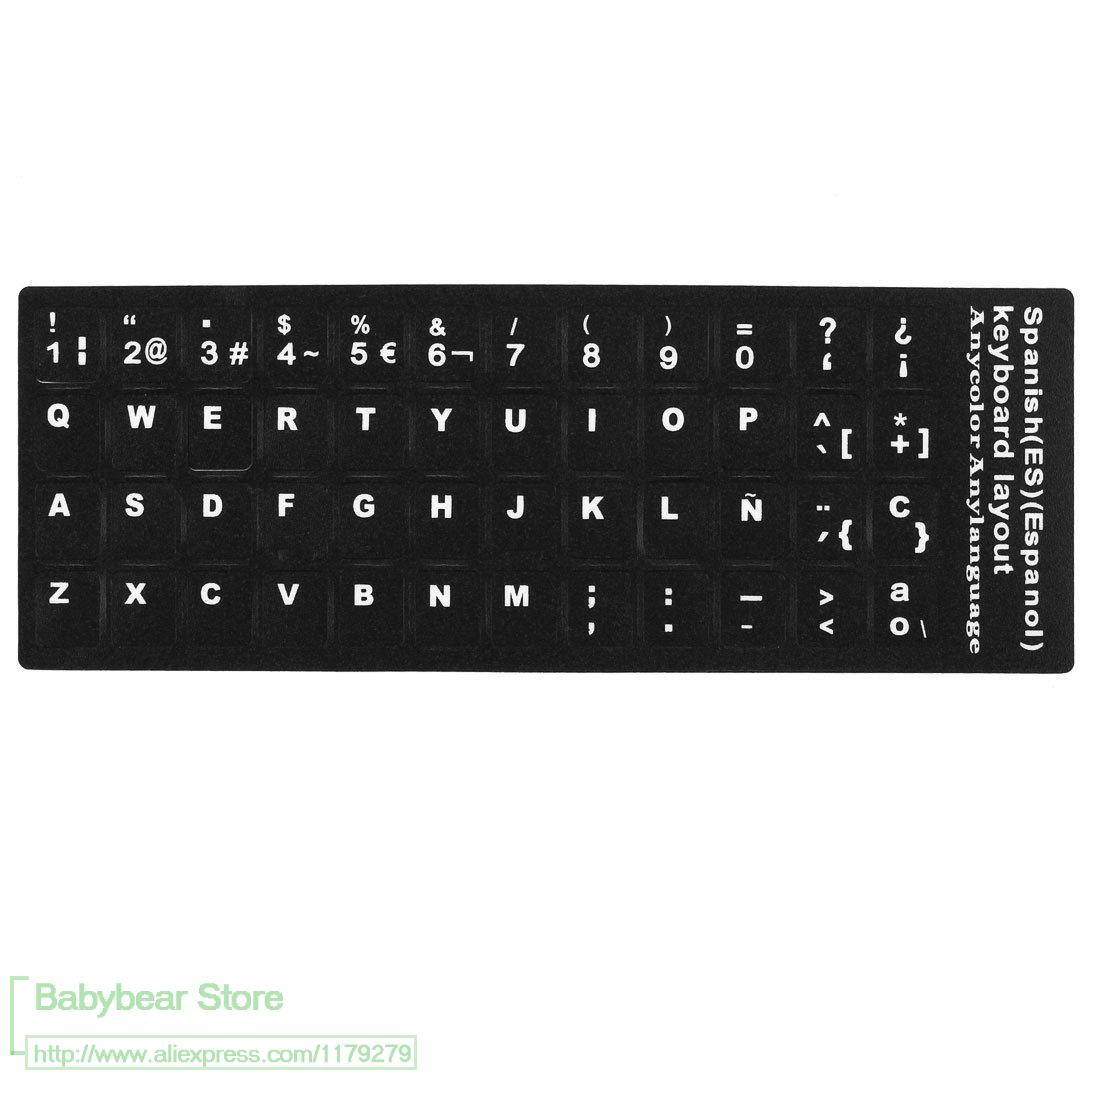 spanish letters on keyboard 50pcs letters alphabet learning keyboard layout 24930